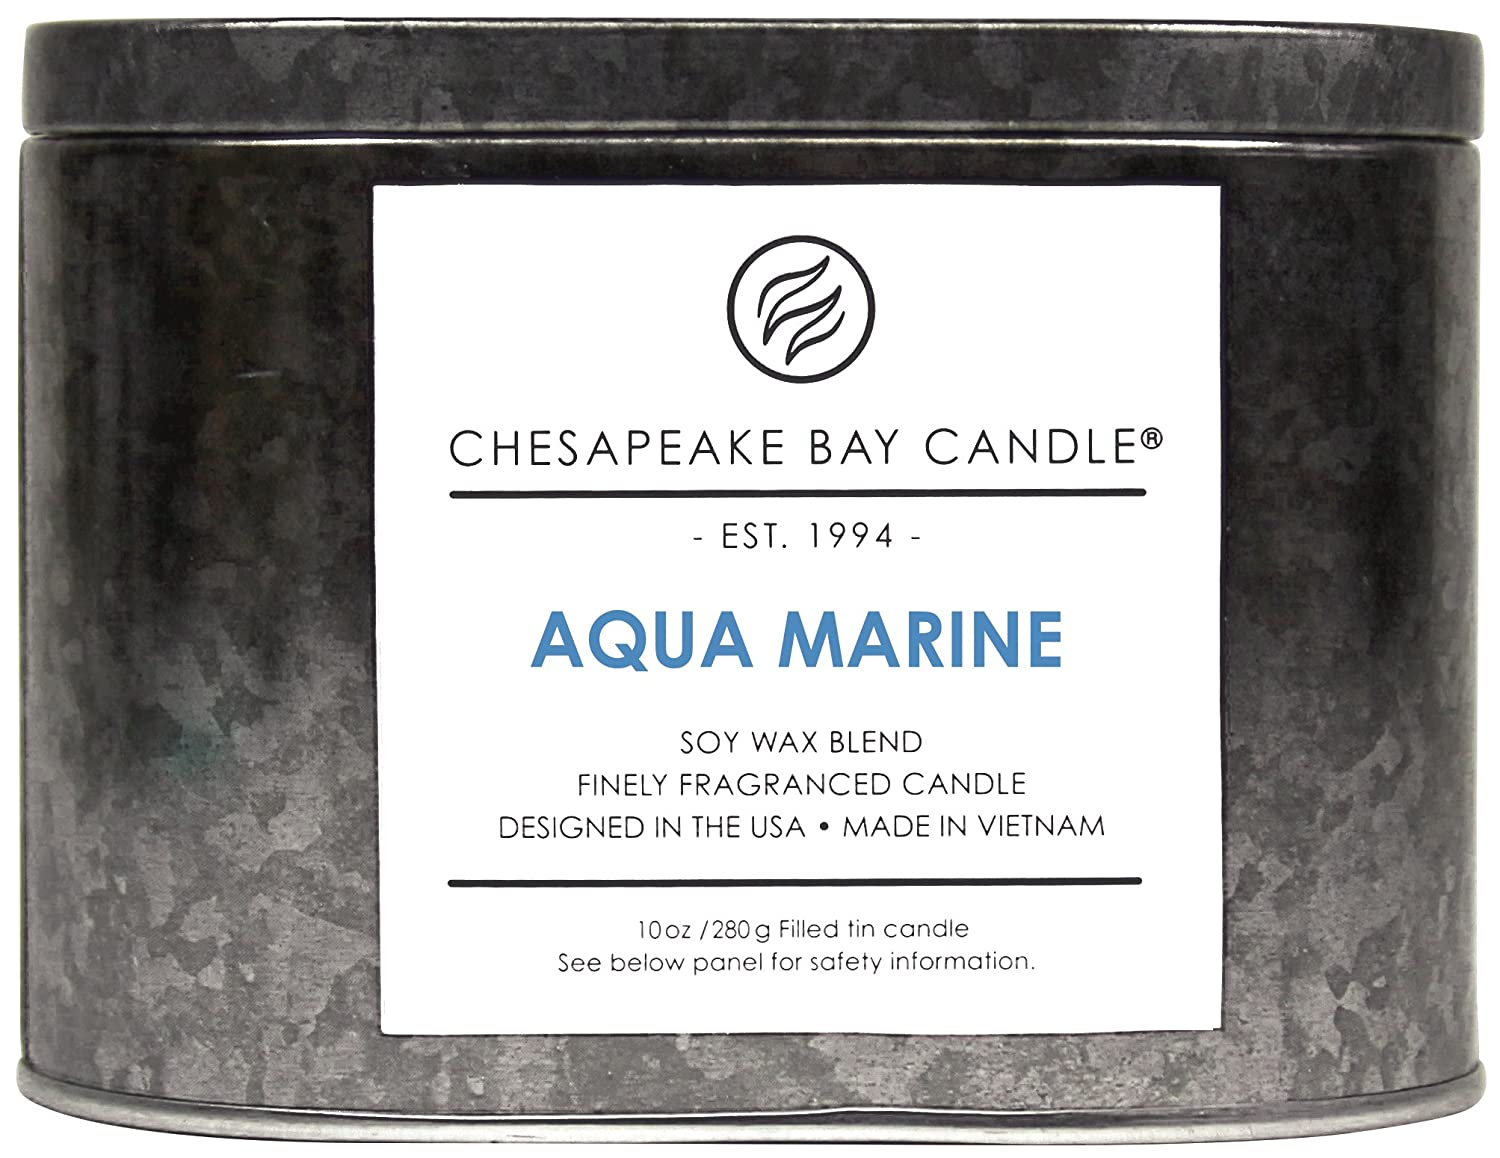 Pumpkin Latte PT96808 Chesapeake Bay Candle Tin with Double Wick Scented Candle